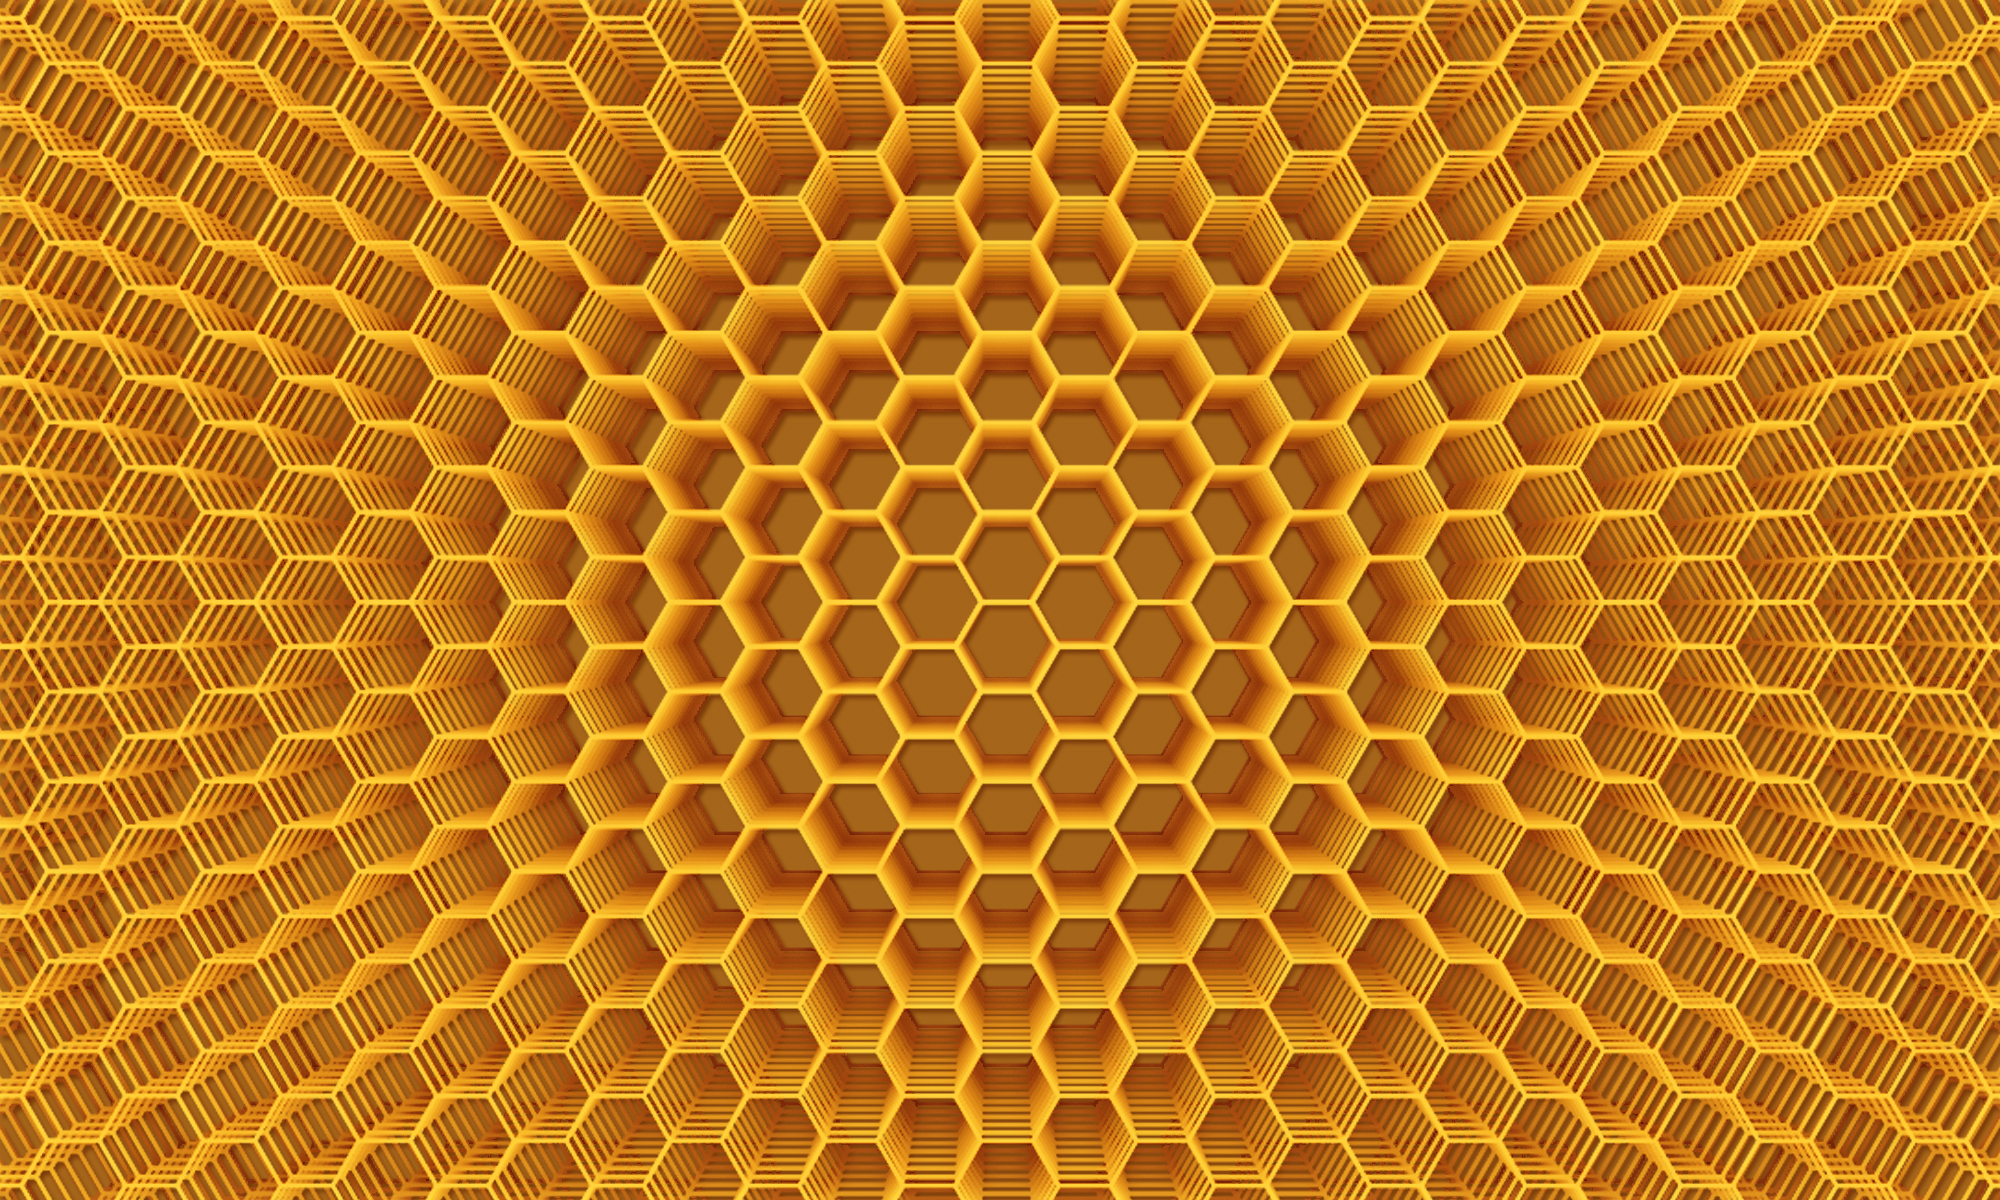 52080 download wallpaper Textures, Texture, Honeycomb, Optical Illusion, Abstract screensavers and pictures for free